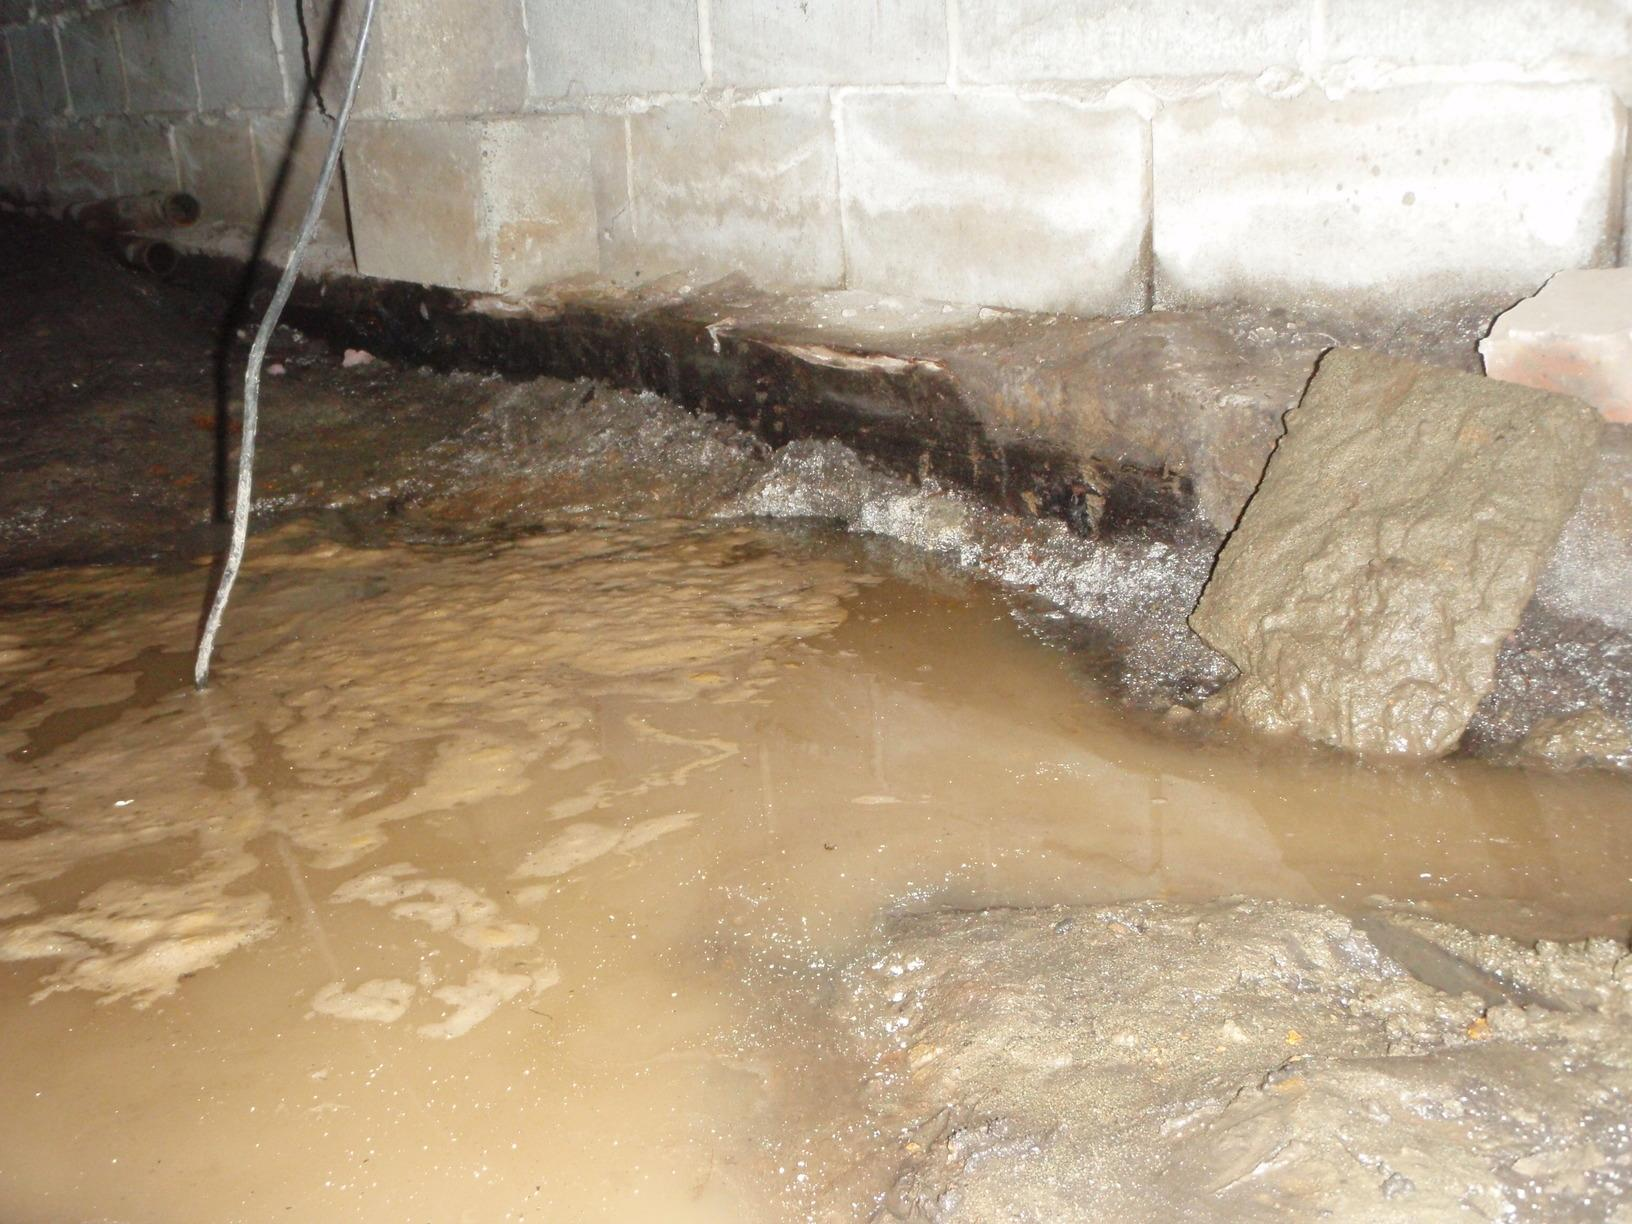 These home owner's were shocked to see what was going on in their crawl space